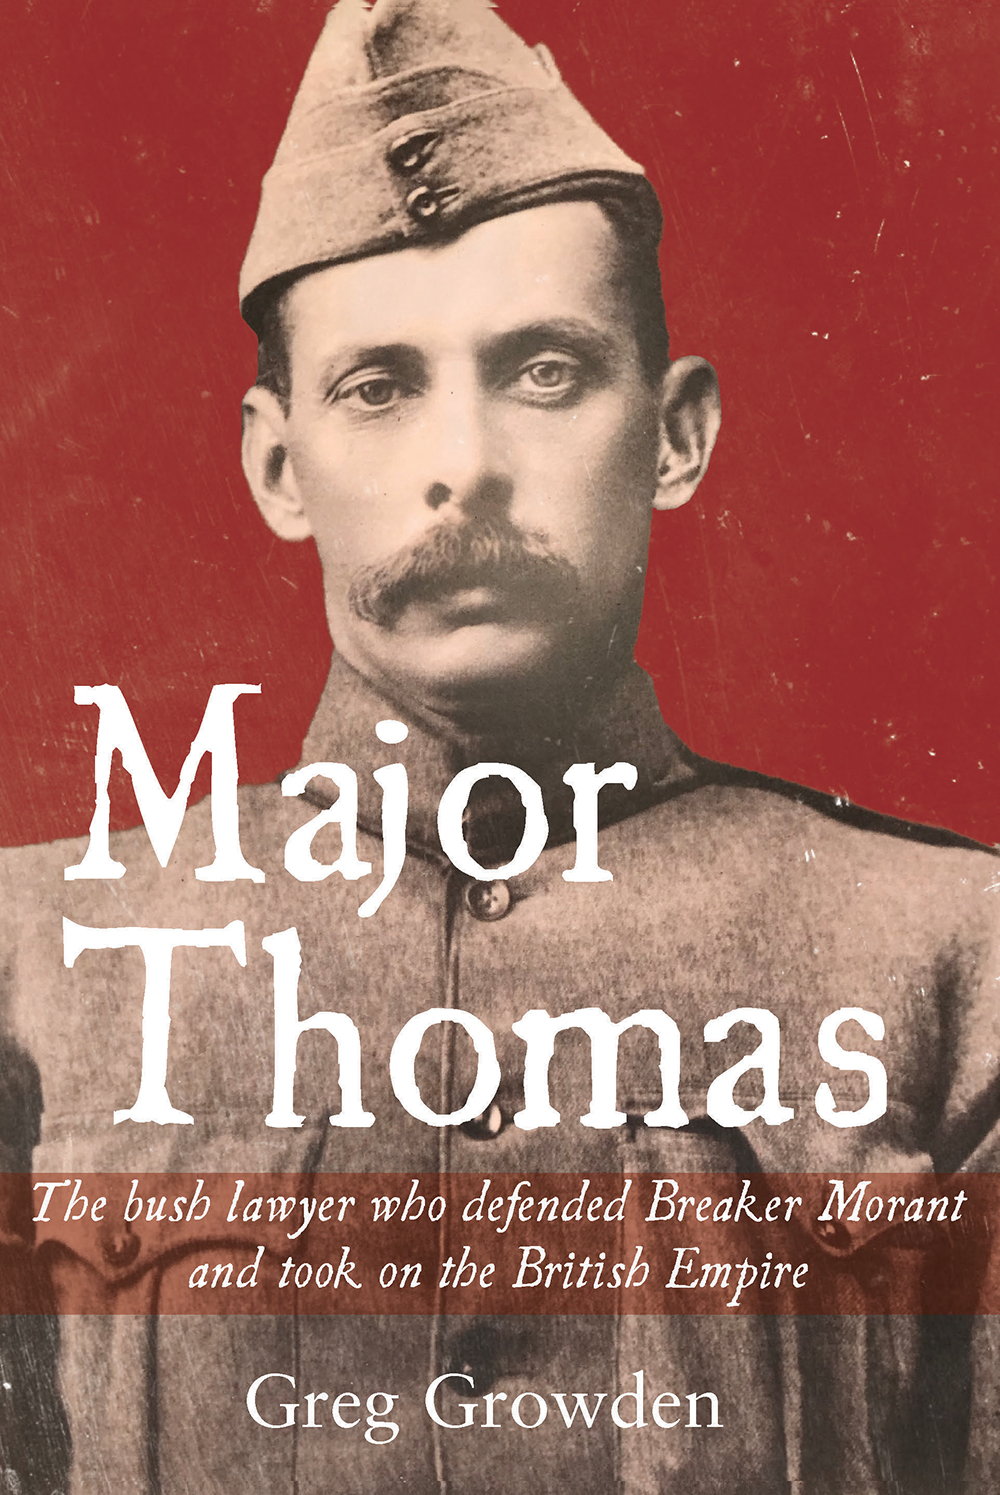 Major Thomas by Greg Growden